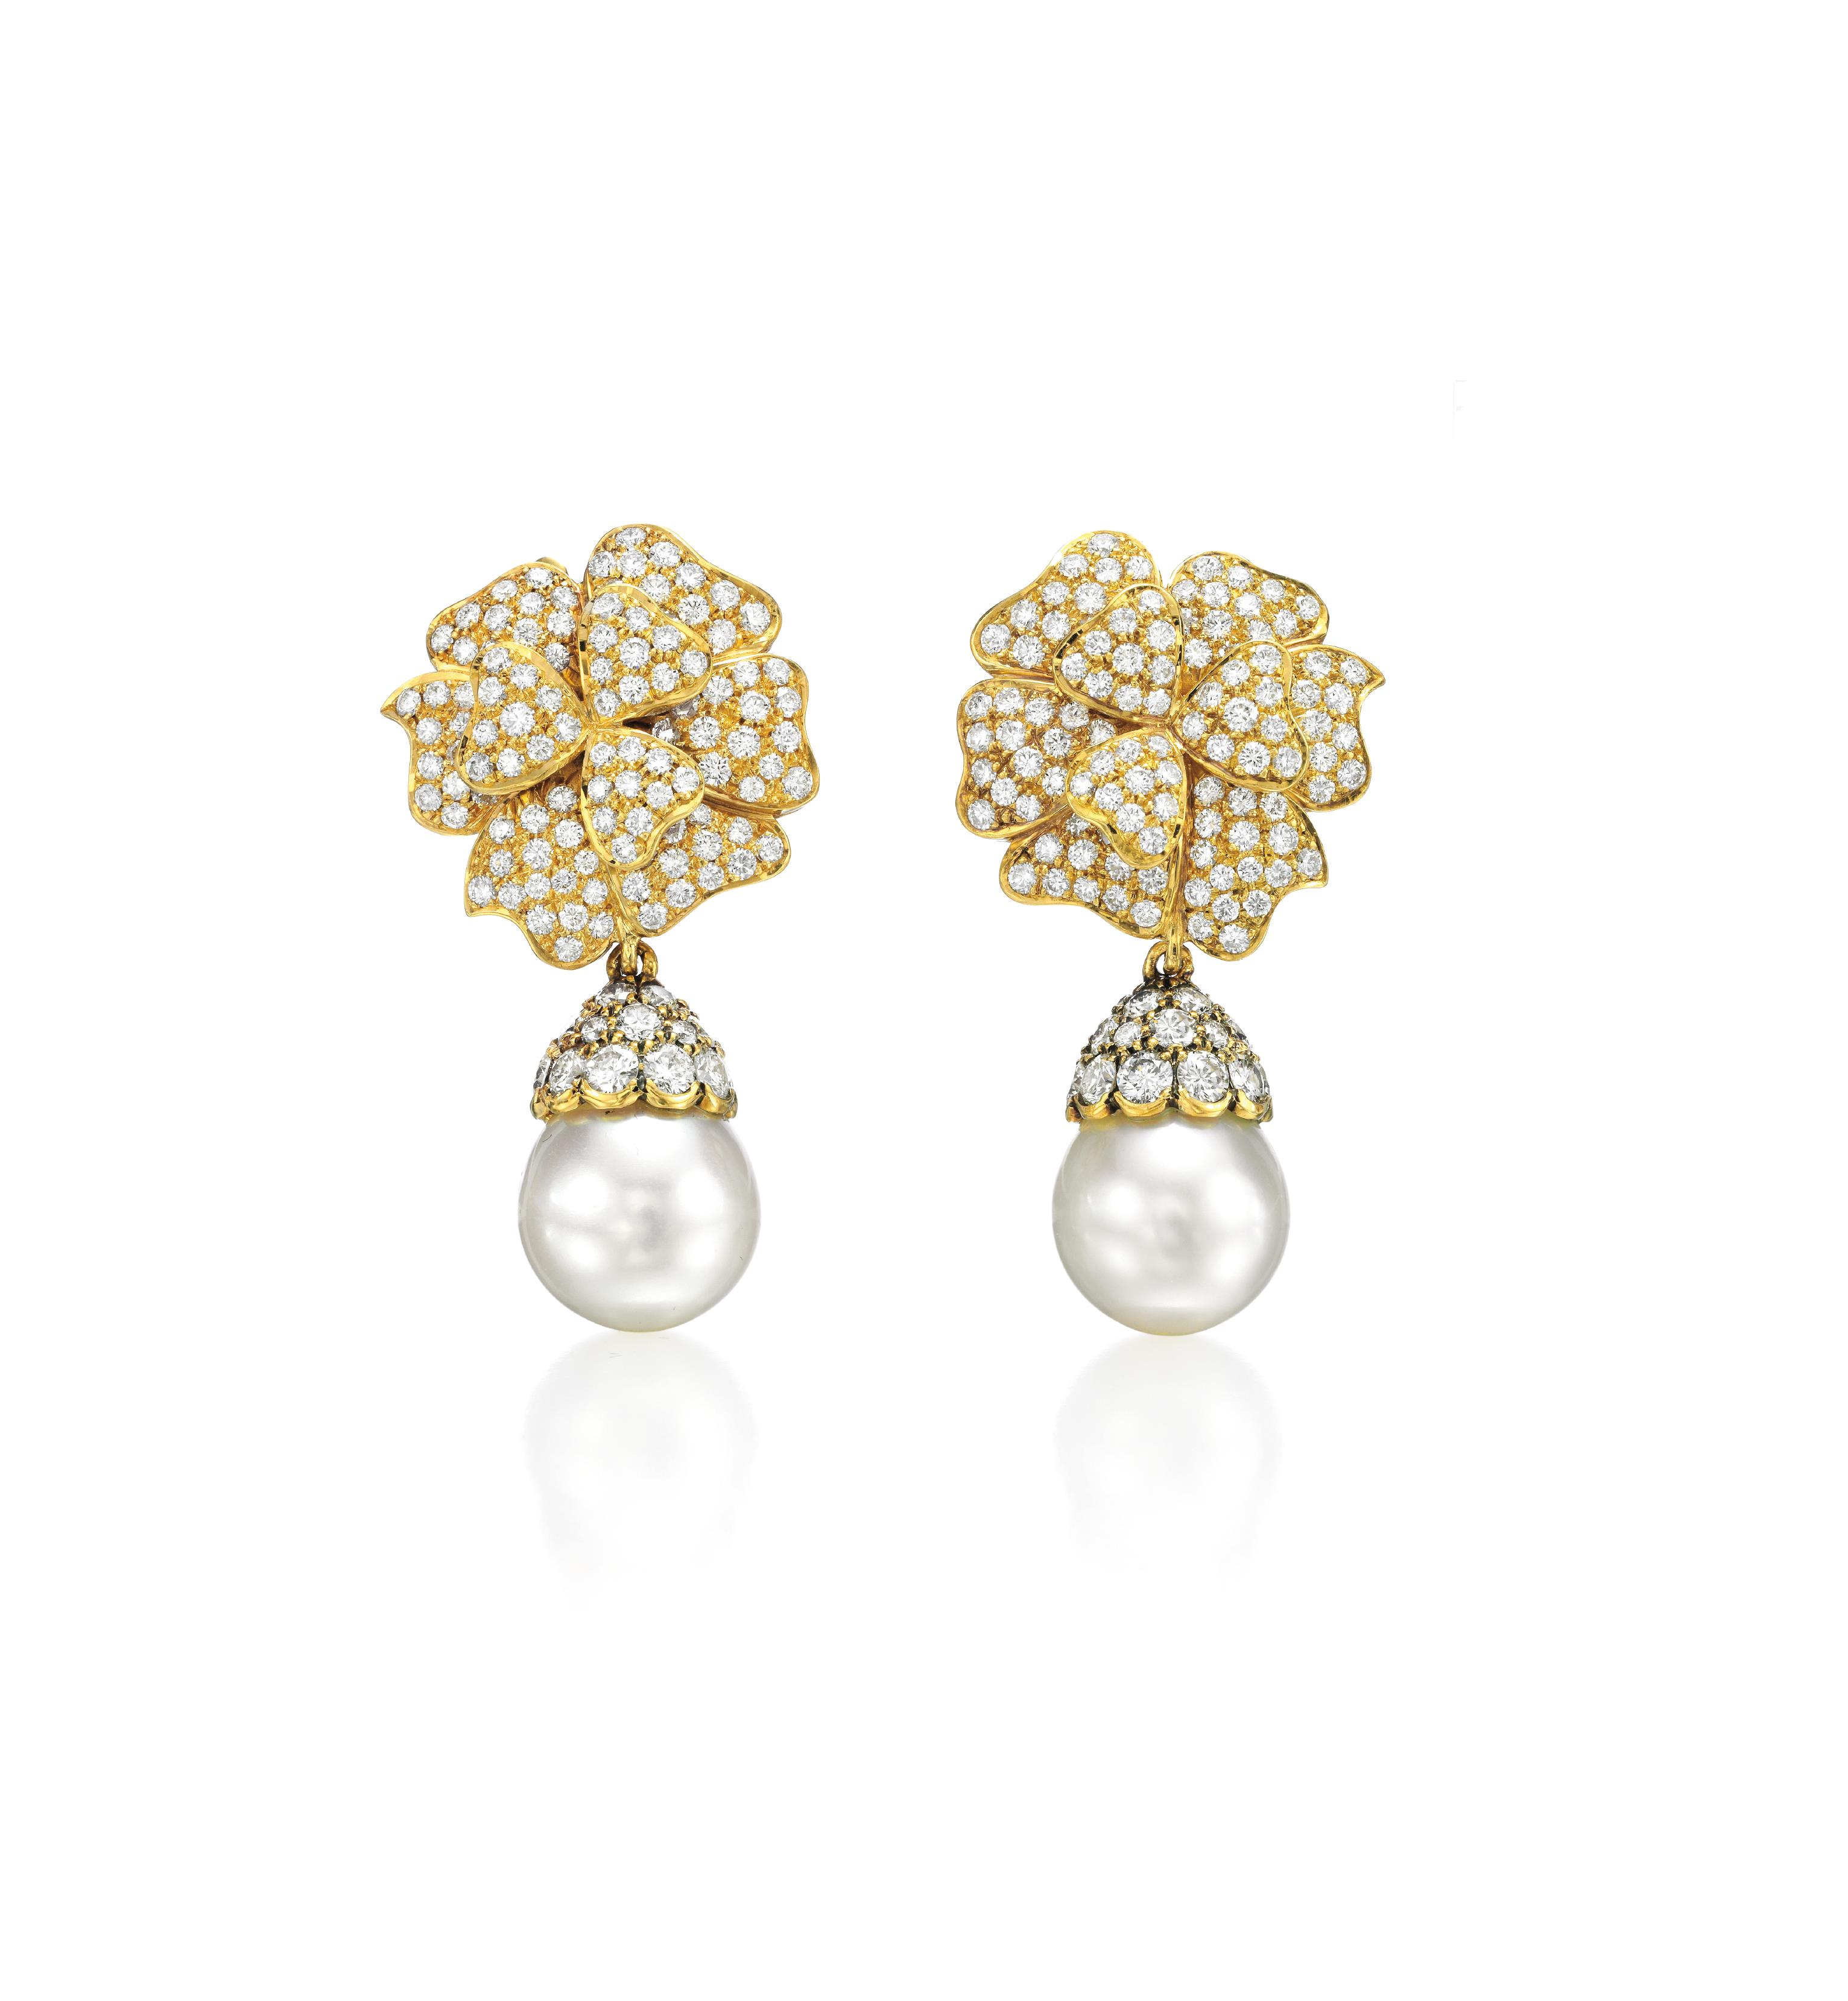 A Pair of Diamond and Cultured Pearl Ear Pendants